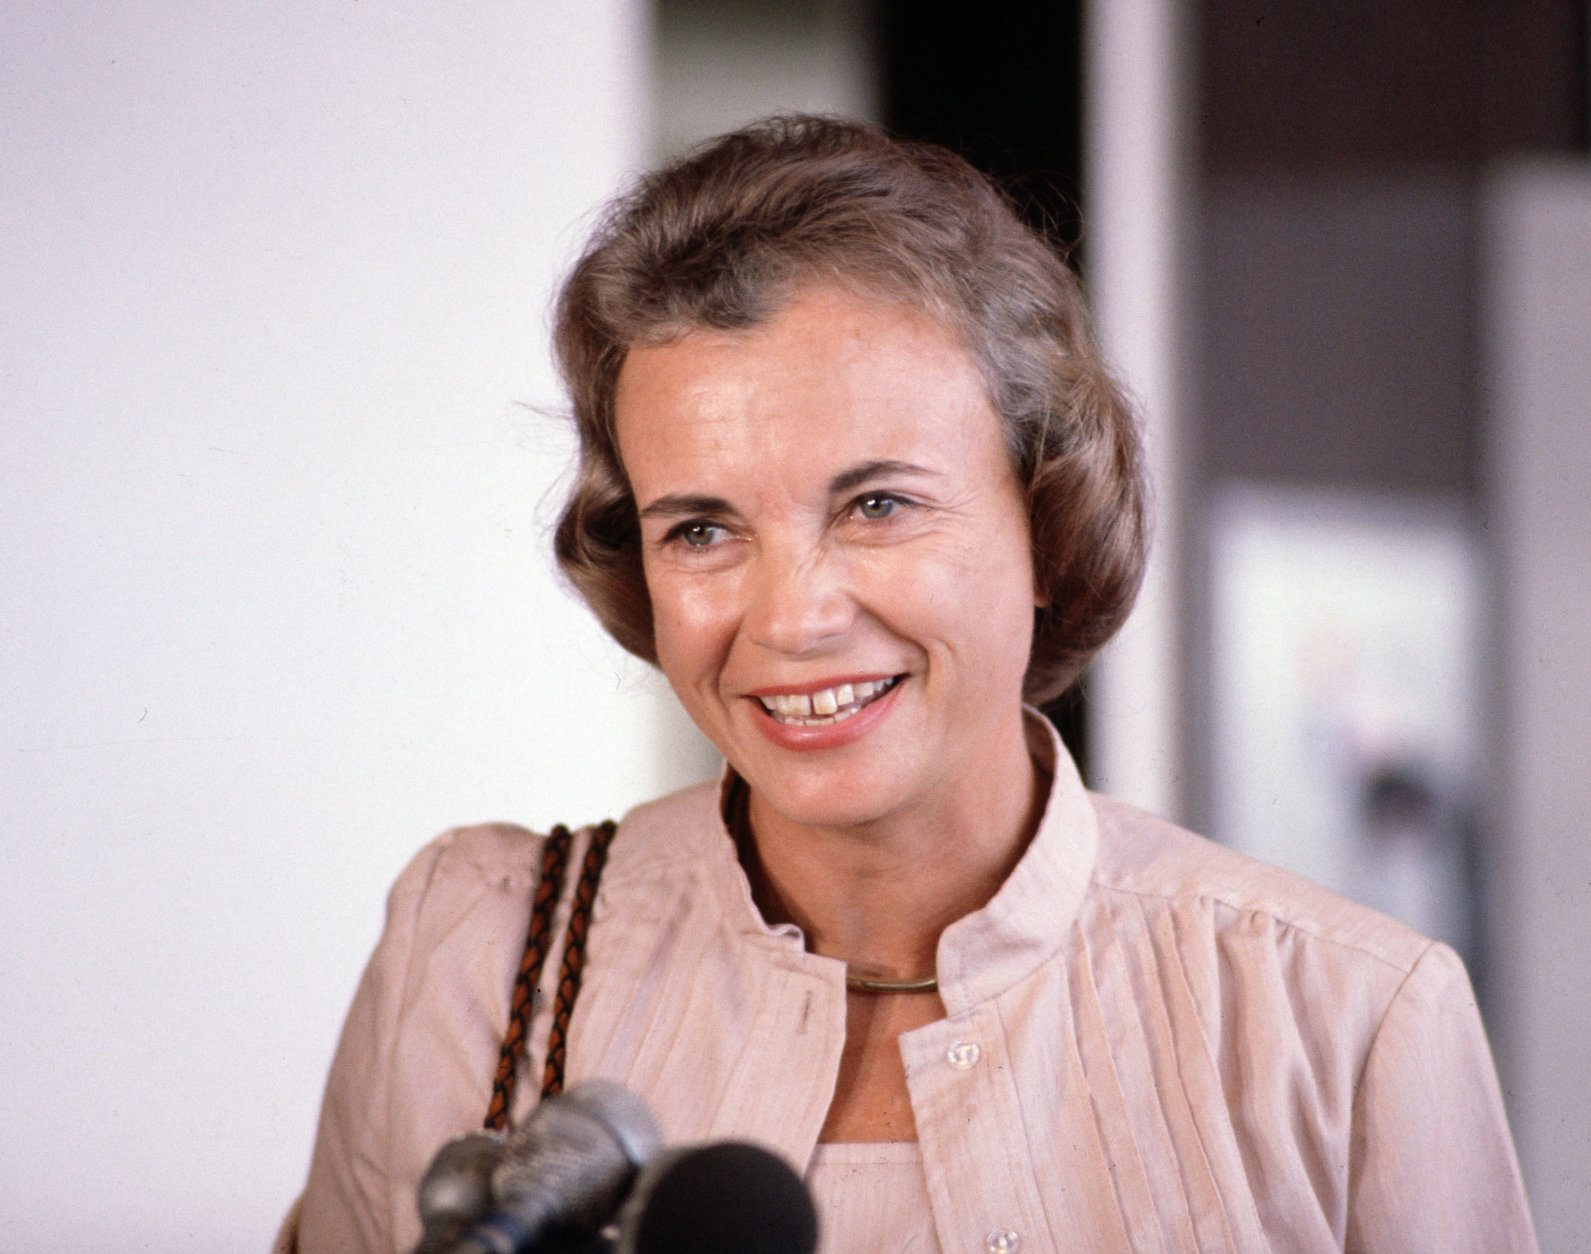 Supreme Court nominee Sandra Day O'Connor is shown on arrival at Washington National Airport, July 1981.  (AP Photo/Charles Tasnadi)